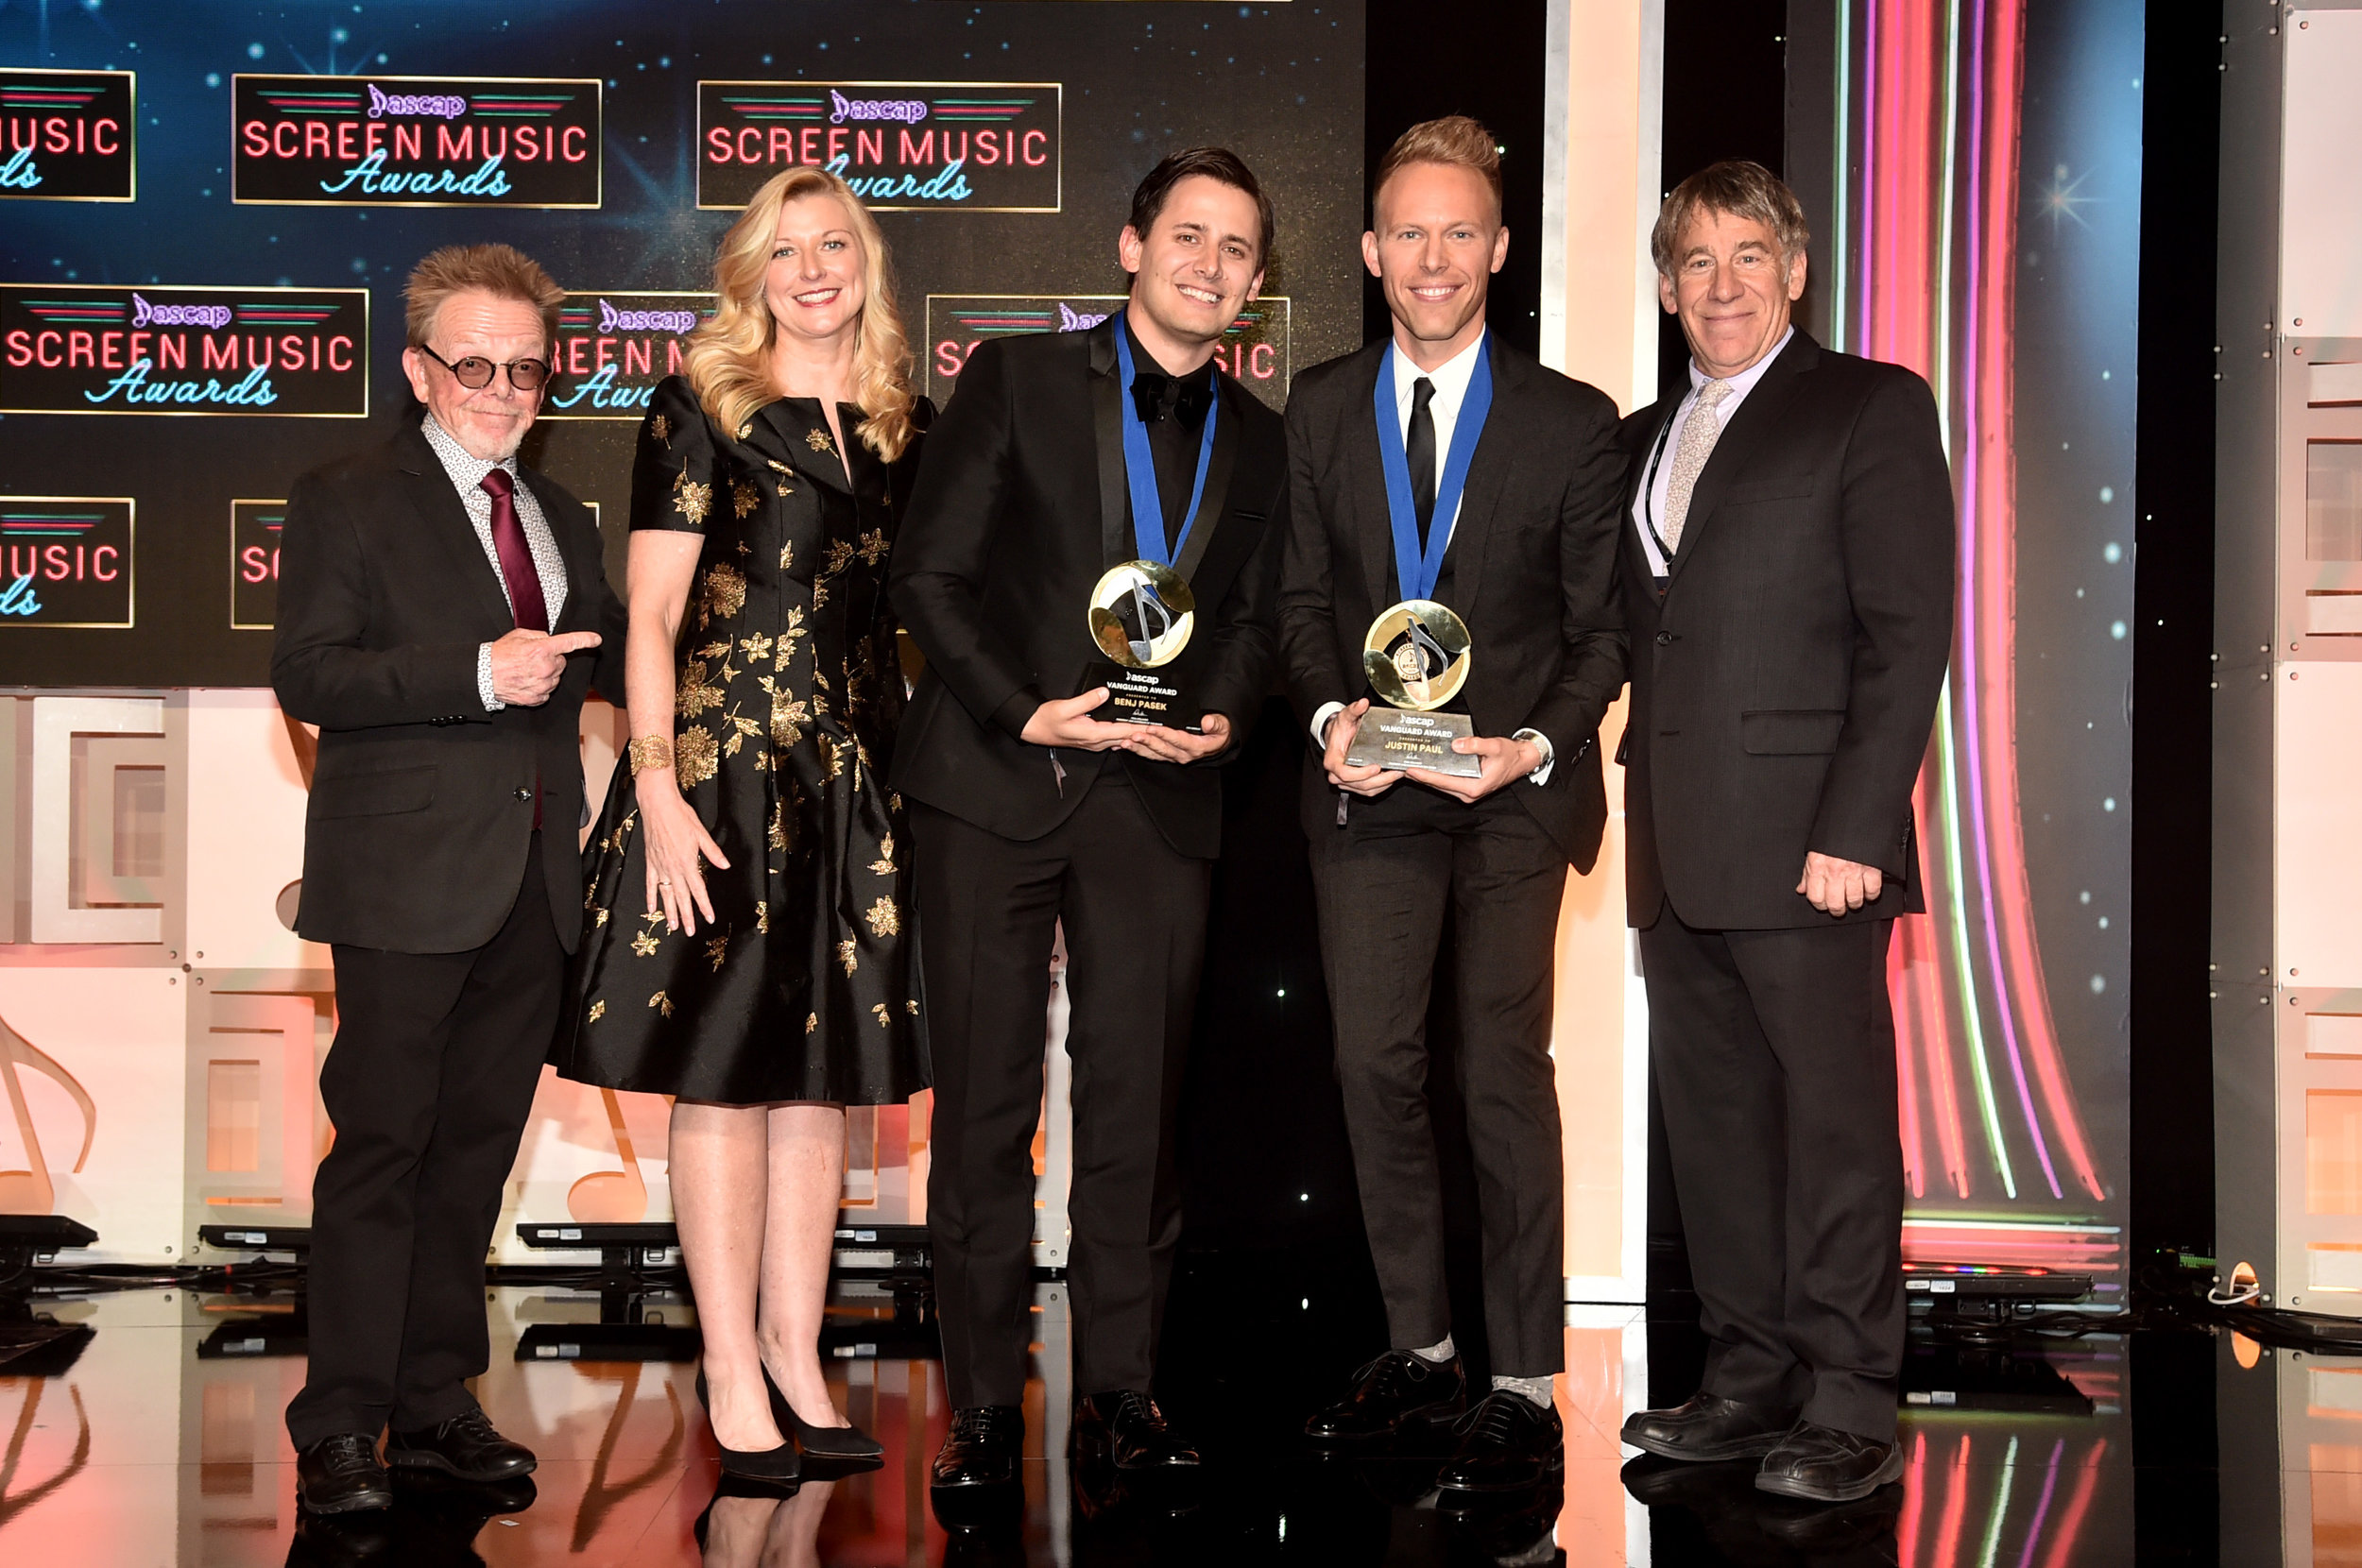 BEVERLY HILLS, CALIFORNIA - MAY 15: (L-R) ASCAP President and Chairman of the Board Paul Williams, ASCAP CEO Elizabeth Matthews, Vanguard Award winners Benj Pasek and Justin Paul and composer Stephen Schwartz stand onstage during the ASCAP 2019 Screen Music Awards Show at The Beverly Hilton Hotel on May 15, 2019 in Beverly Hills, California. (Photo by Alberto E. Rodriguez/Getty Images for ASCAP)